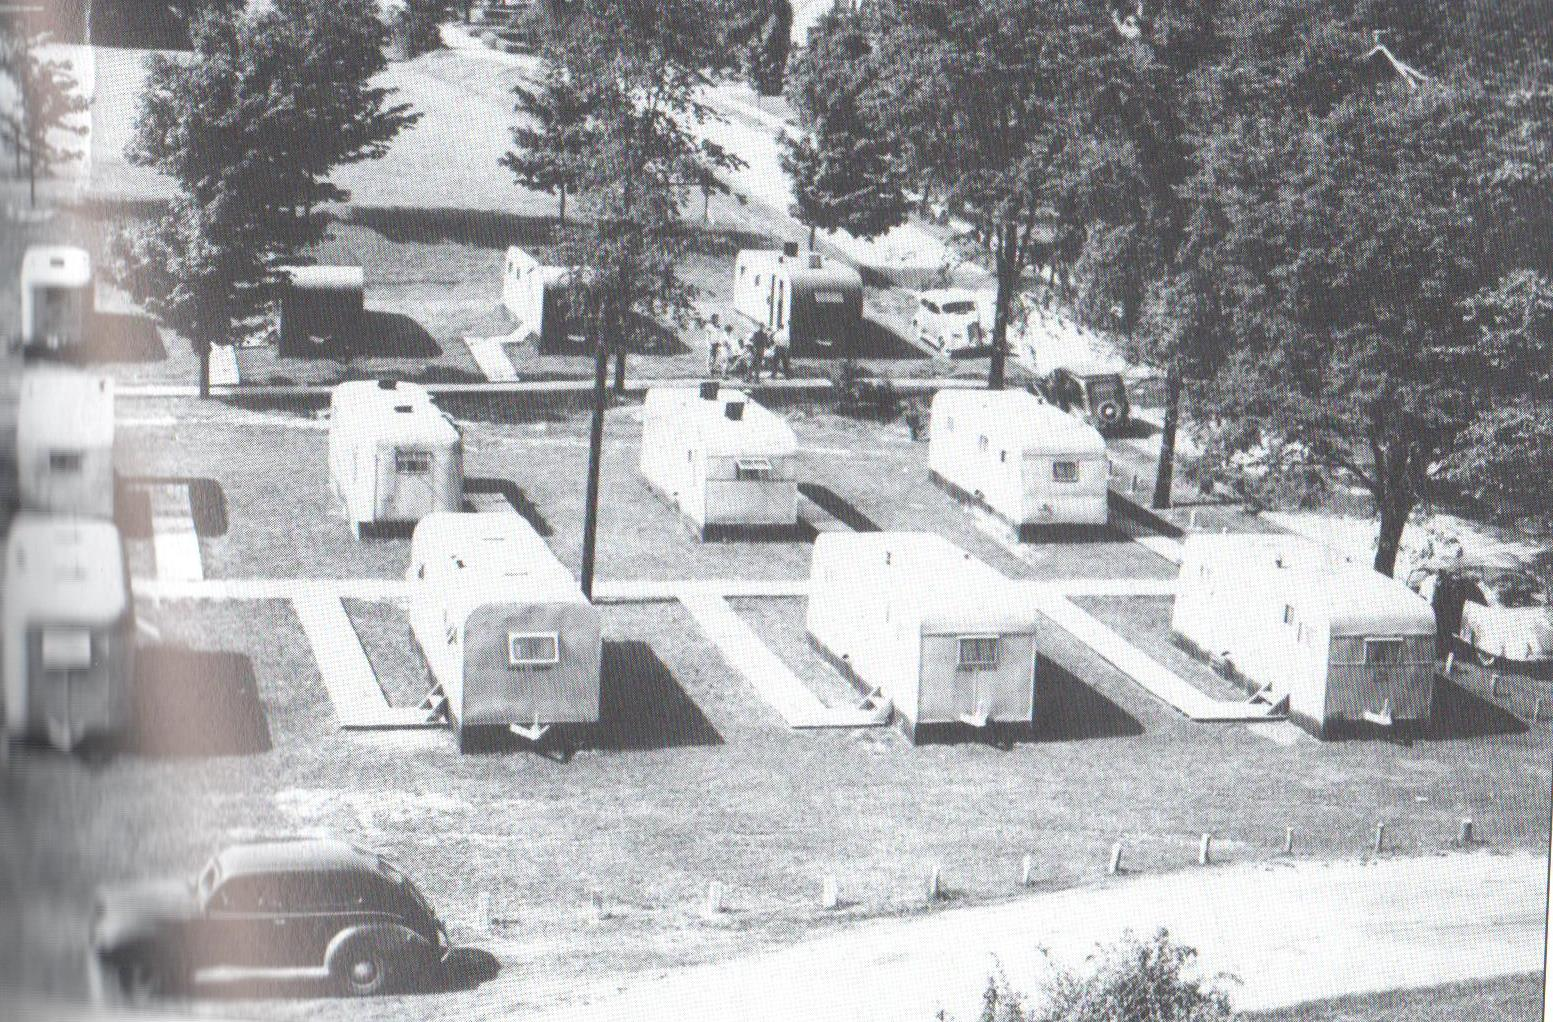 Image of the Trailwood Heights trailer community. The veterans who lived in these trailers often had their children and wives live with them, making the trailers and those who lived in them bond more like a community would.